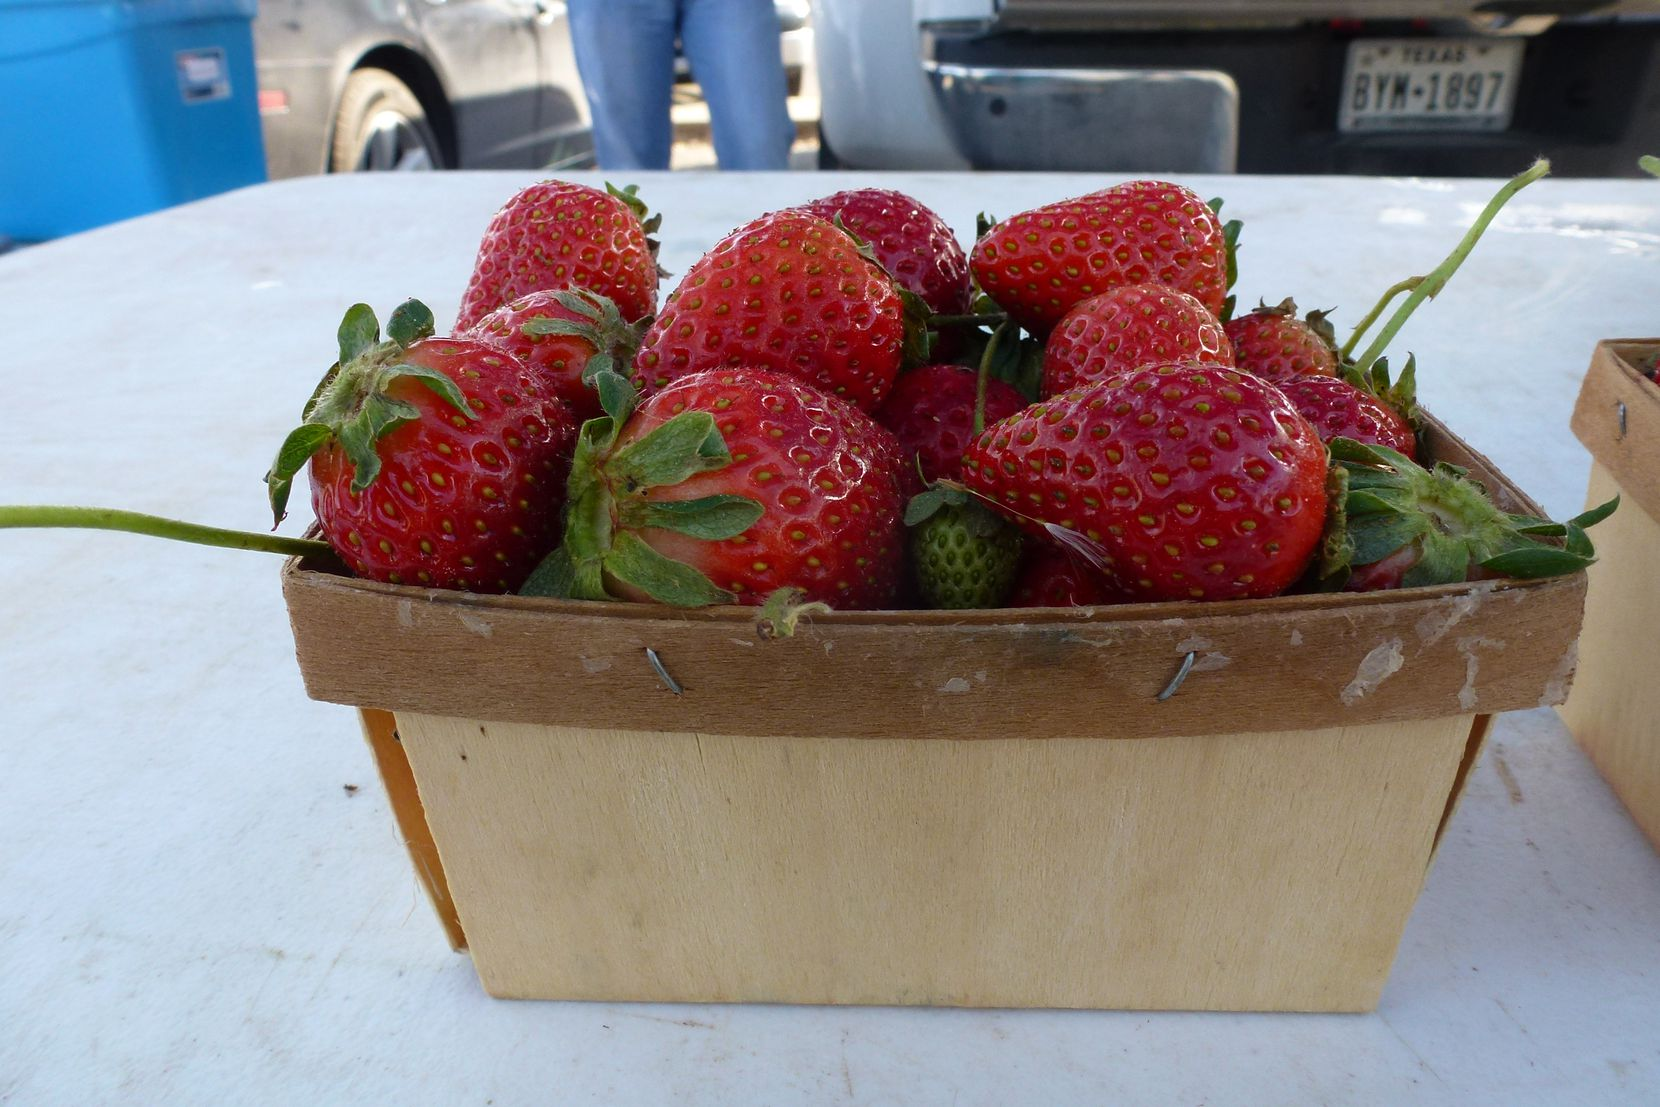 Strawberries up close and personal at Cowtown Farmers Market from  Demases Farm in Boyd